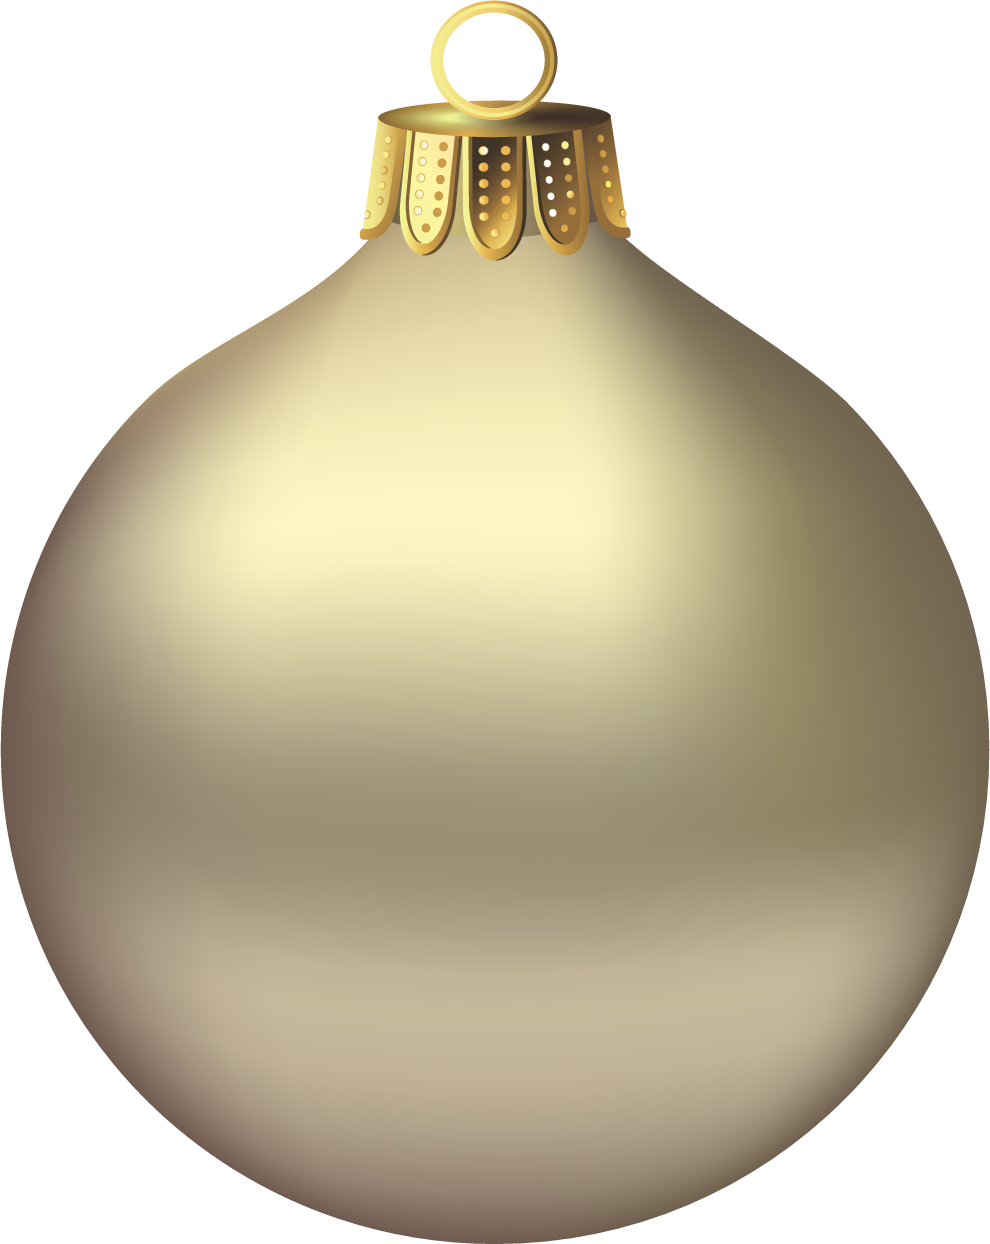 Gold christmas ornament clipart image library stock Transparent Christmas Gold Ornament Clipart | Gallery Yopriceville ... image library stock